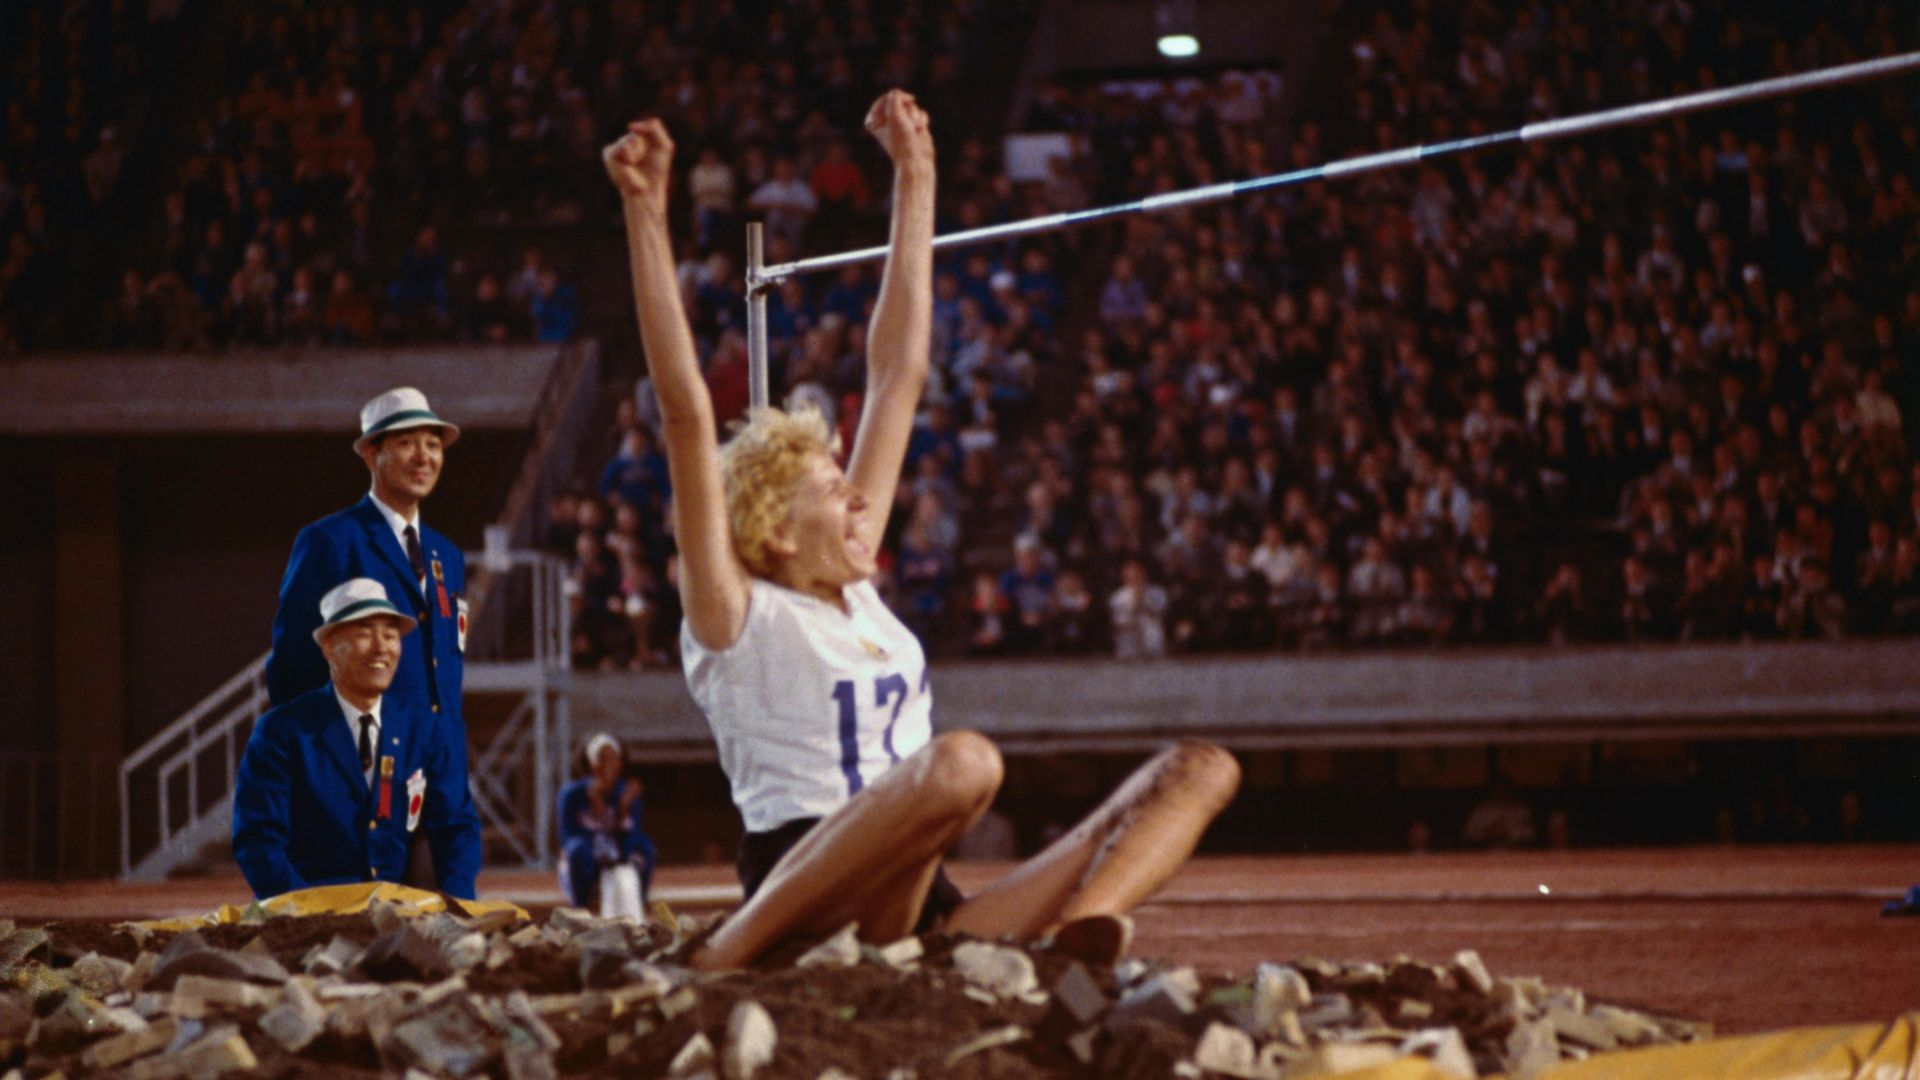 Iolanda Balas after jumping 1.90m to set a a new Olympic record at the 1964 Summer Olympics in Tokyo - Credit: Bettmann Archive